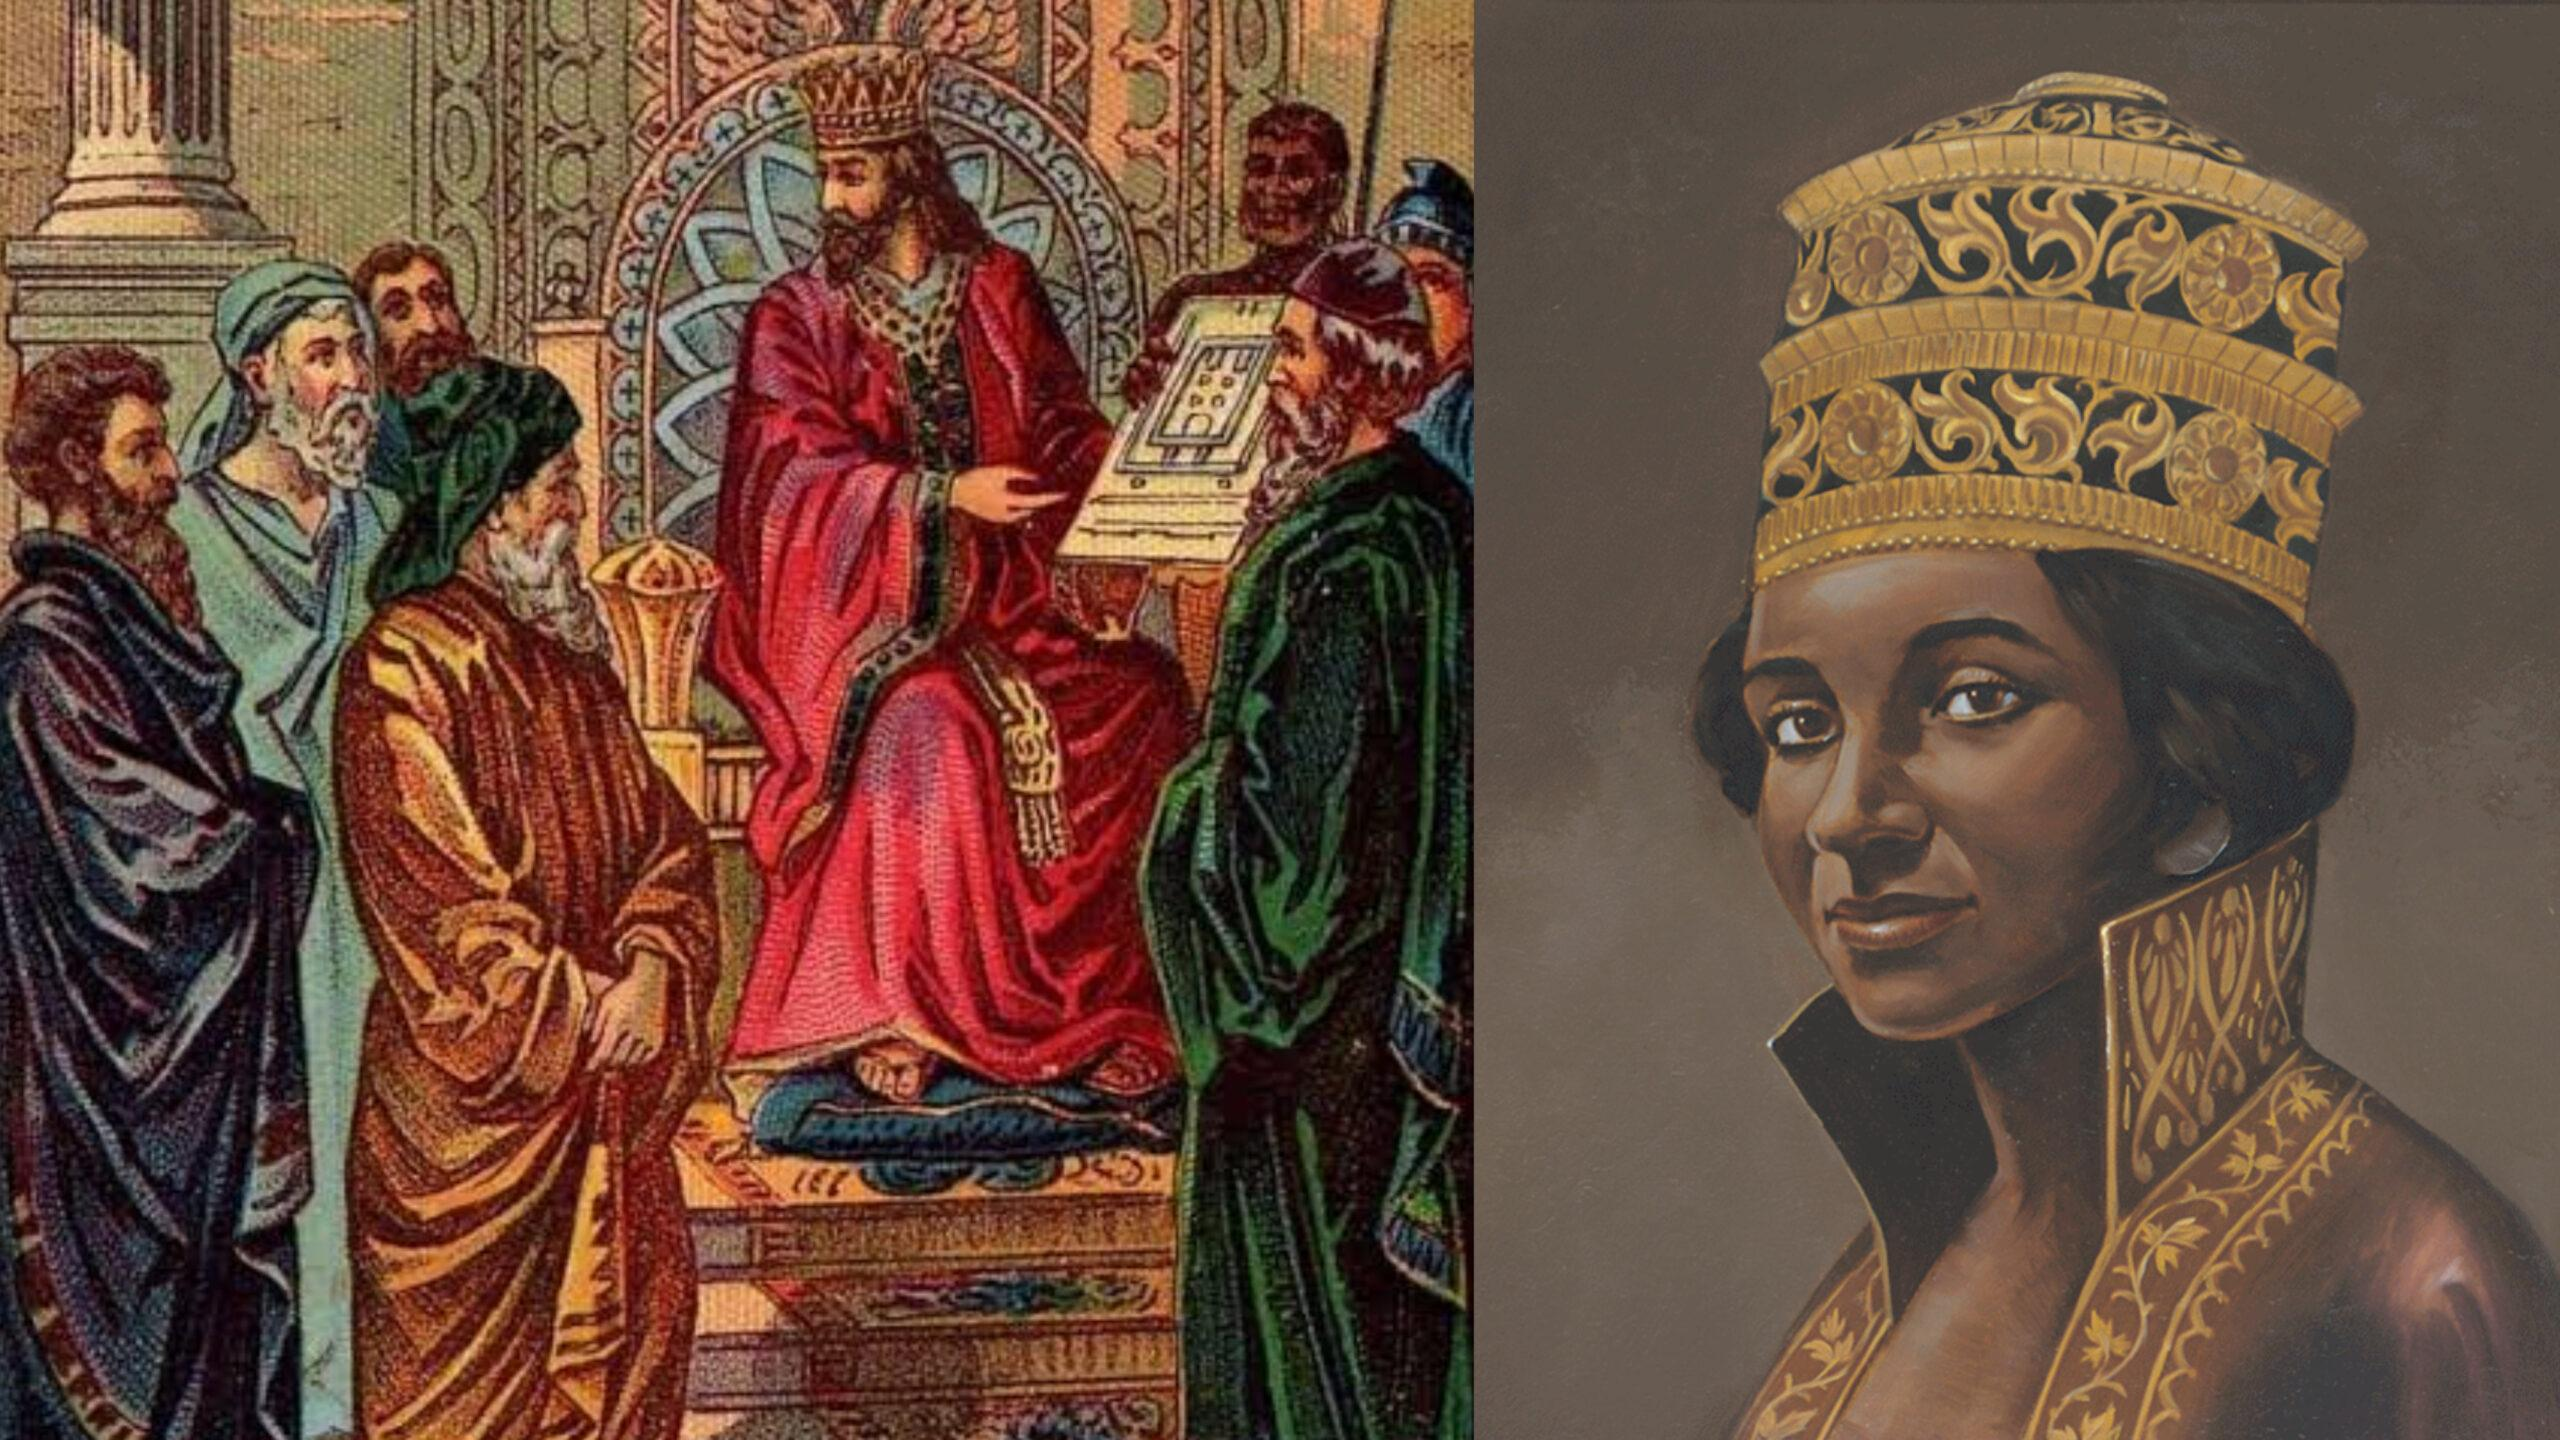 Queen of Sheba-Makeda, intelligent African queen who visited King Solomon to verify his wisdom